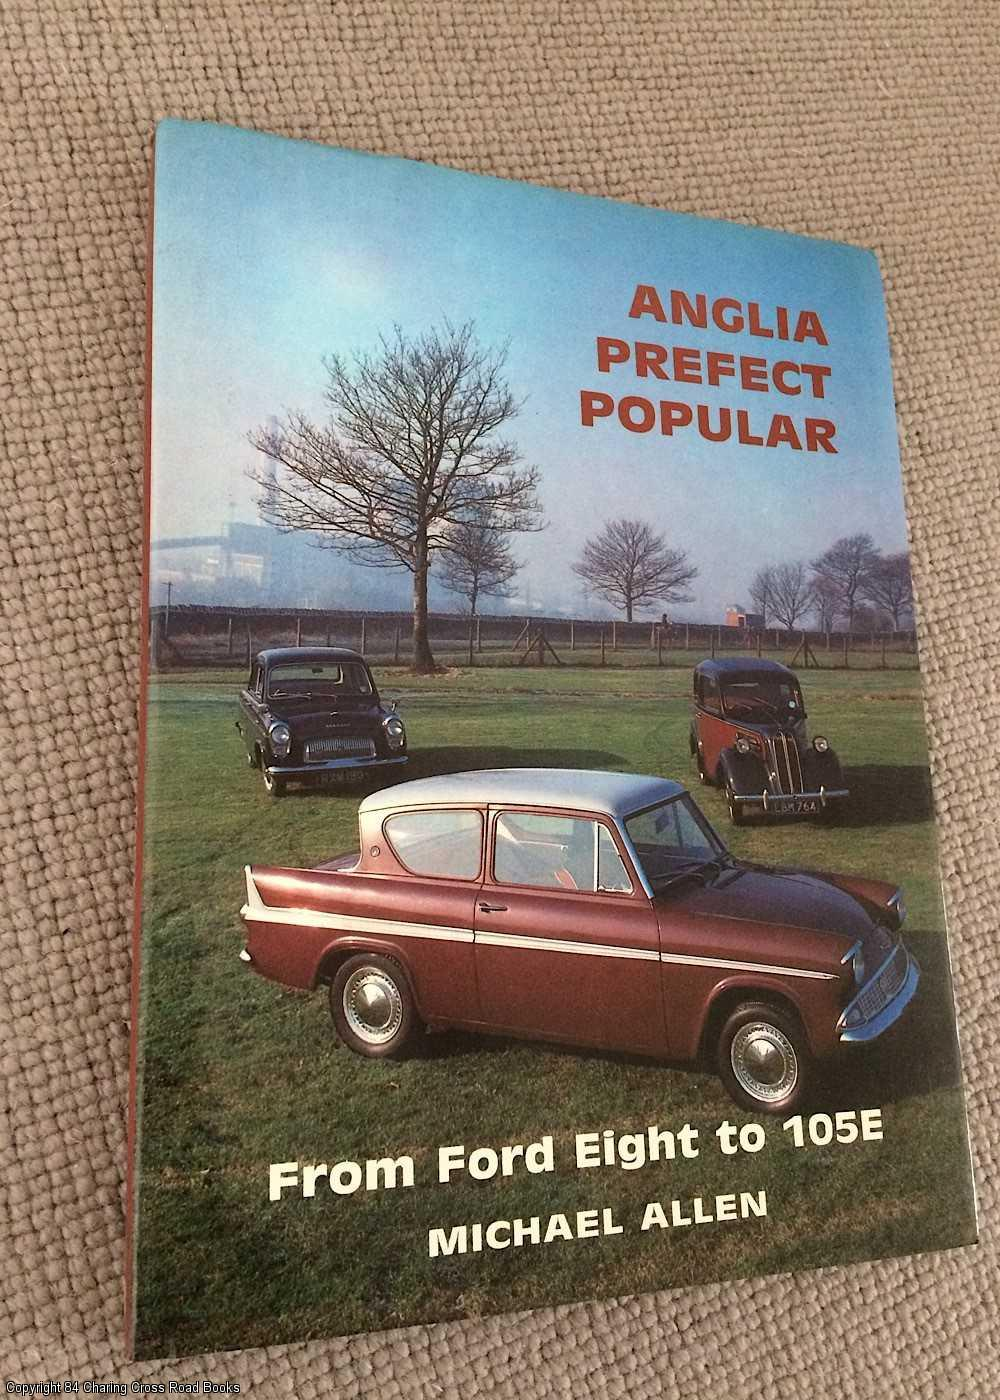 ALLEN, MICHAEL - Anglia: Perfect and Popular : From Ford Eight to 105E